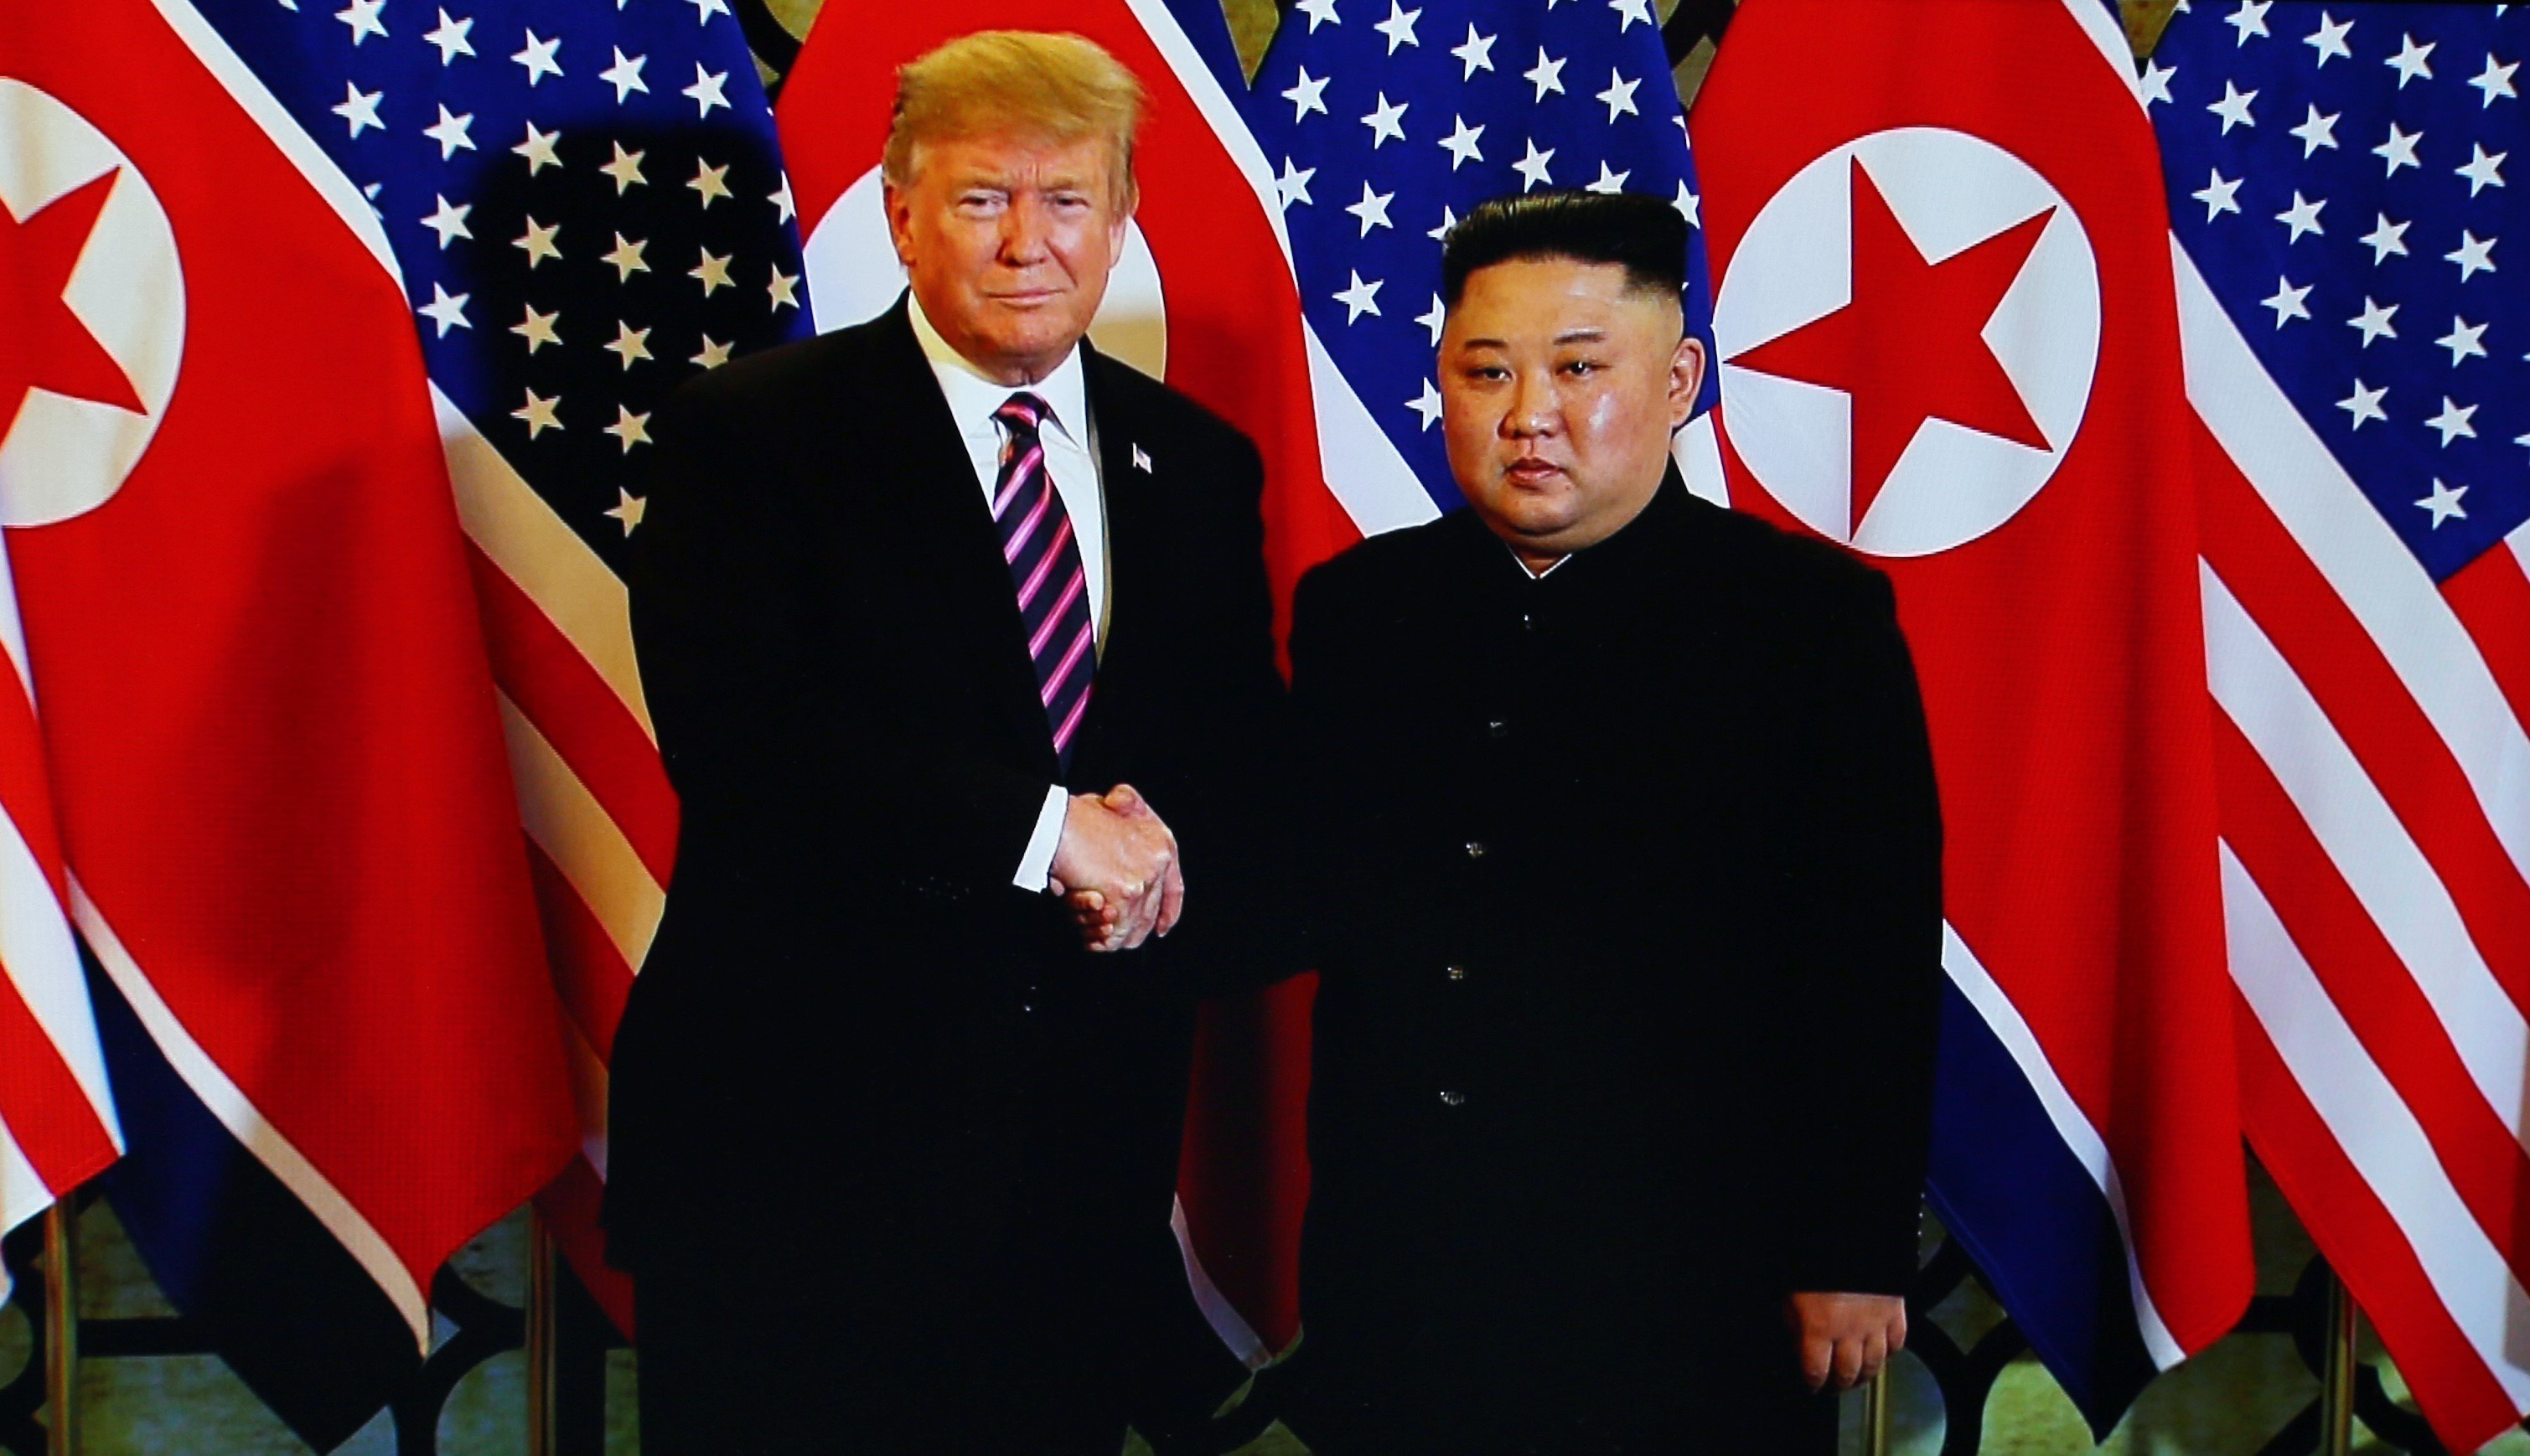 A handout photo of U.S. President Donald Trump and North Korean leader Kim Jong-un during their second summit meeting at the Sofitel Legend Metropole hotel on February 27, 2019 in Hanoi, Vietnam. (Getty Images)